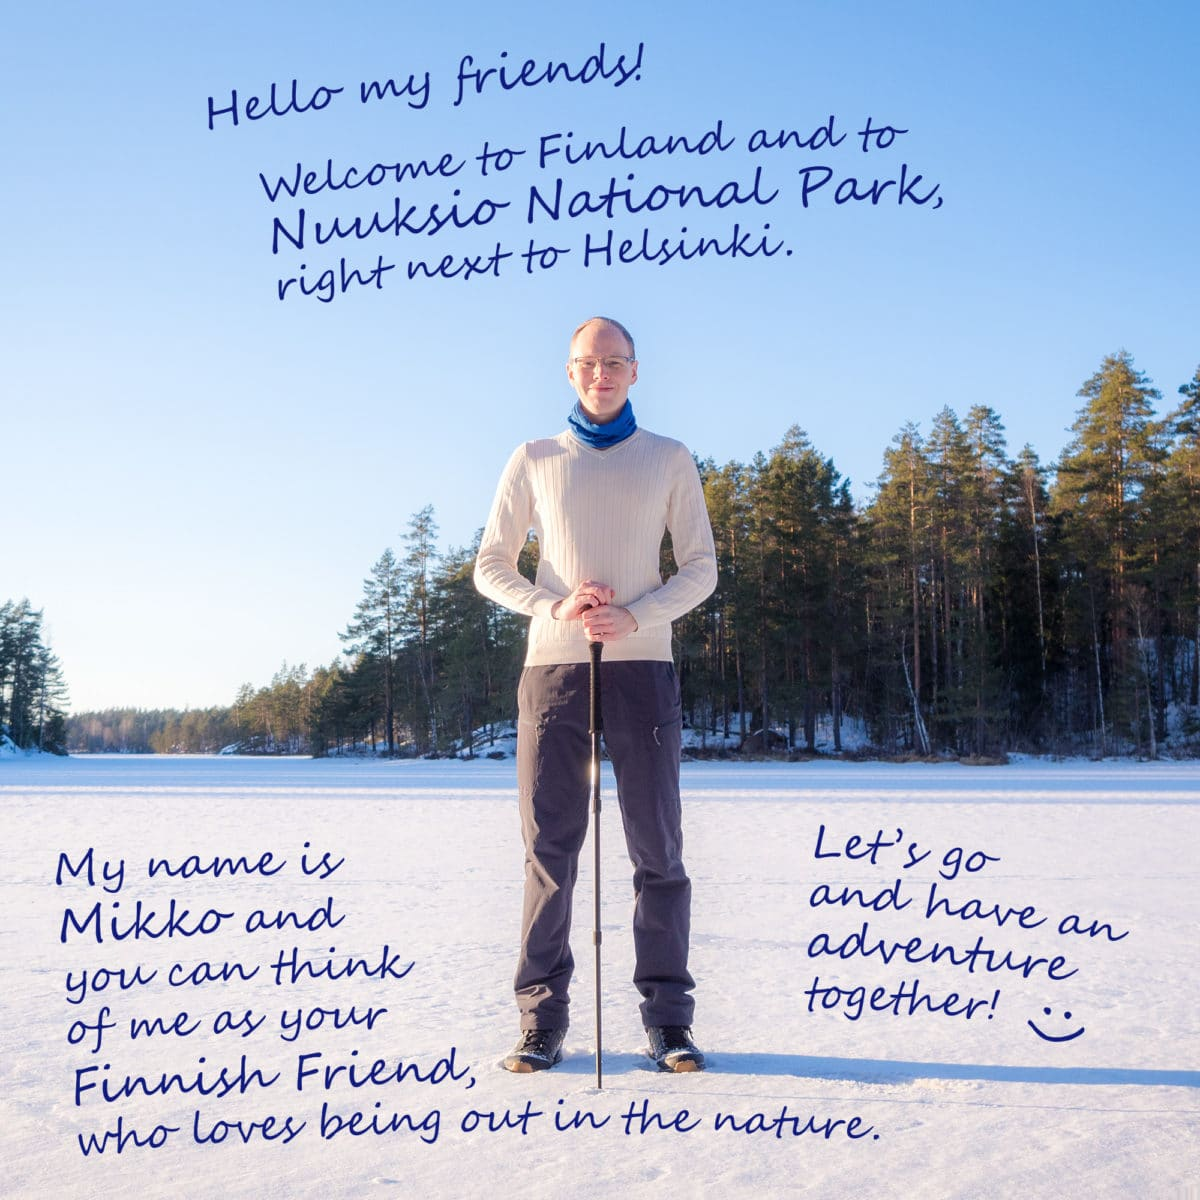 Hello my friends! Welcome to Finland and to Nuuksio National Park, right next to Helsinki. My name is Mikko and you can think of me as your Finnish Friend, who loves being out in the nature. Let's go and have an adventure together!